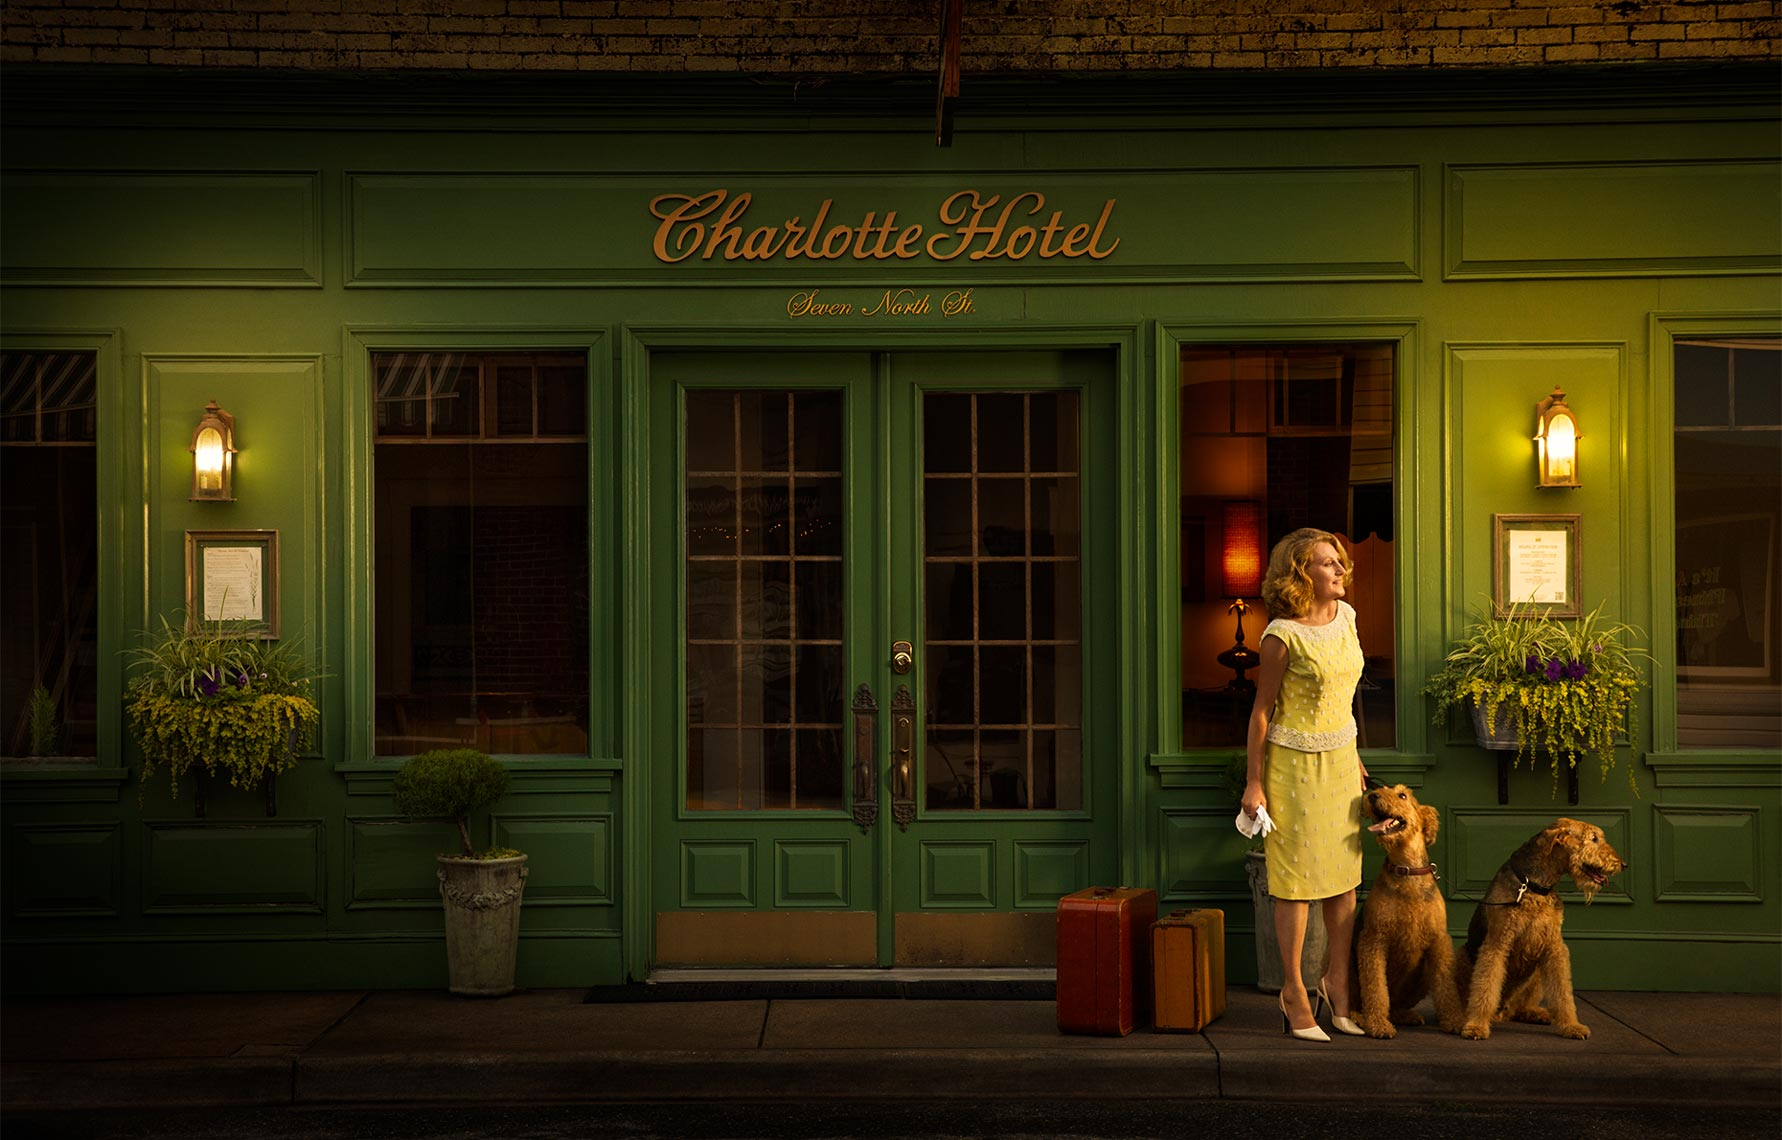 Charlotte, hotel, vintage, suitcase, Airedale